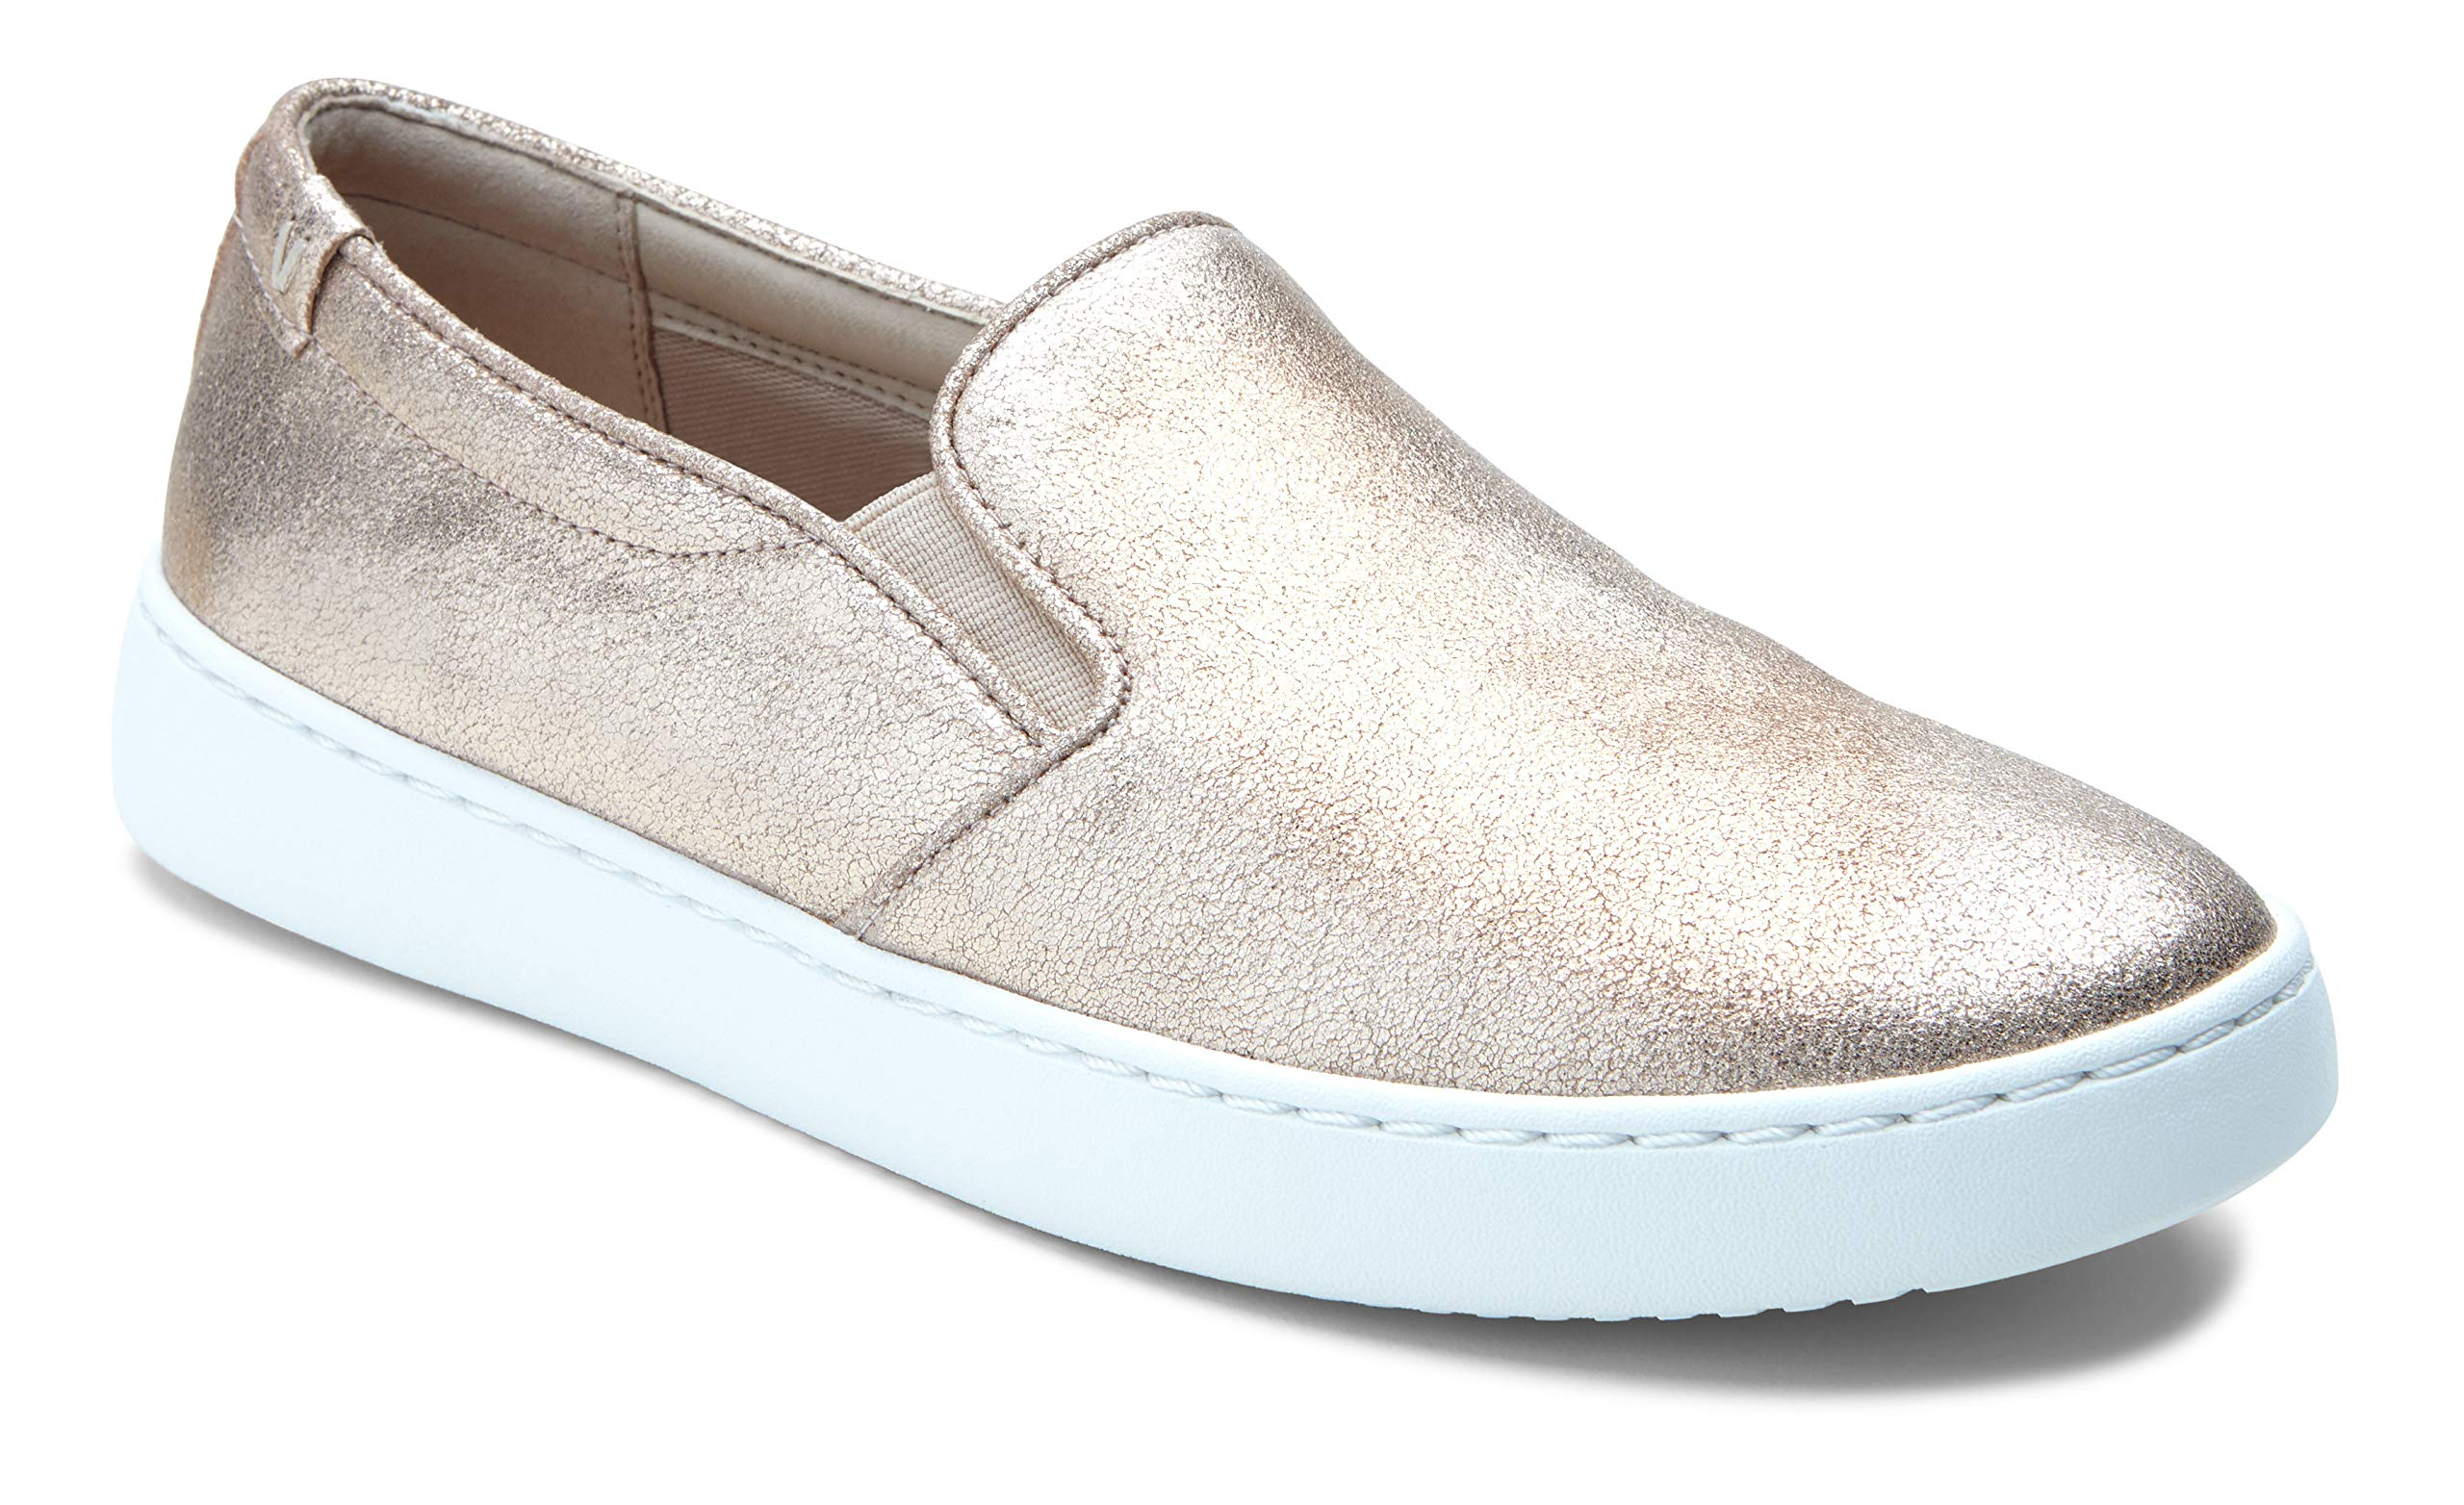 Vioinc Women's Pro Mahoney Avery Slip-on - Ladies Water Resistant Slip Resistant Service Shoes with Concealed Orthotic Arch Support Rose Gold Metallic Suede 6 W US